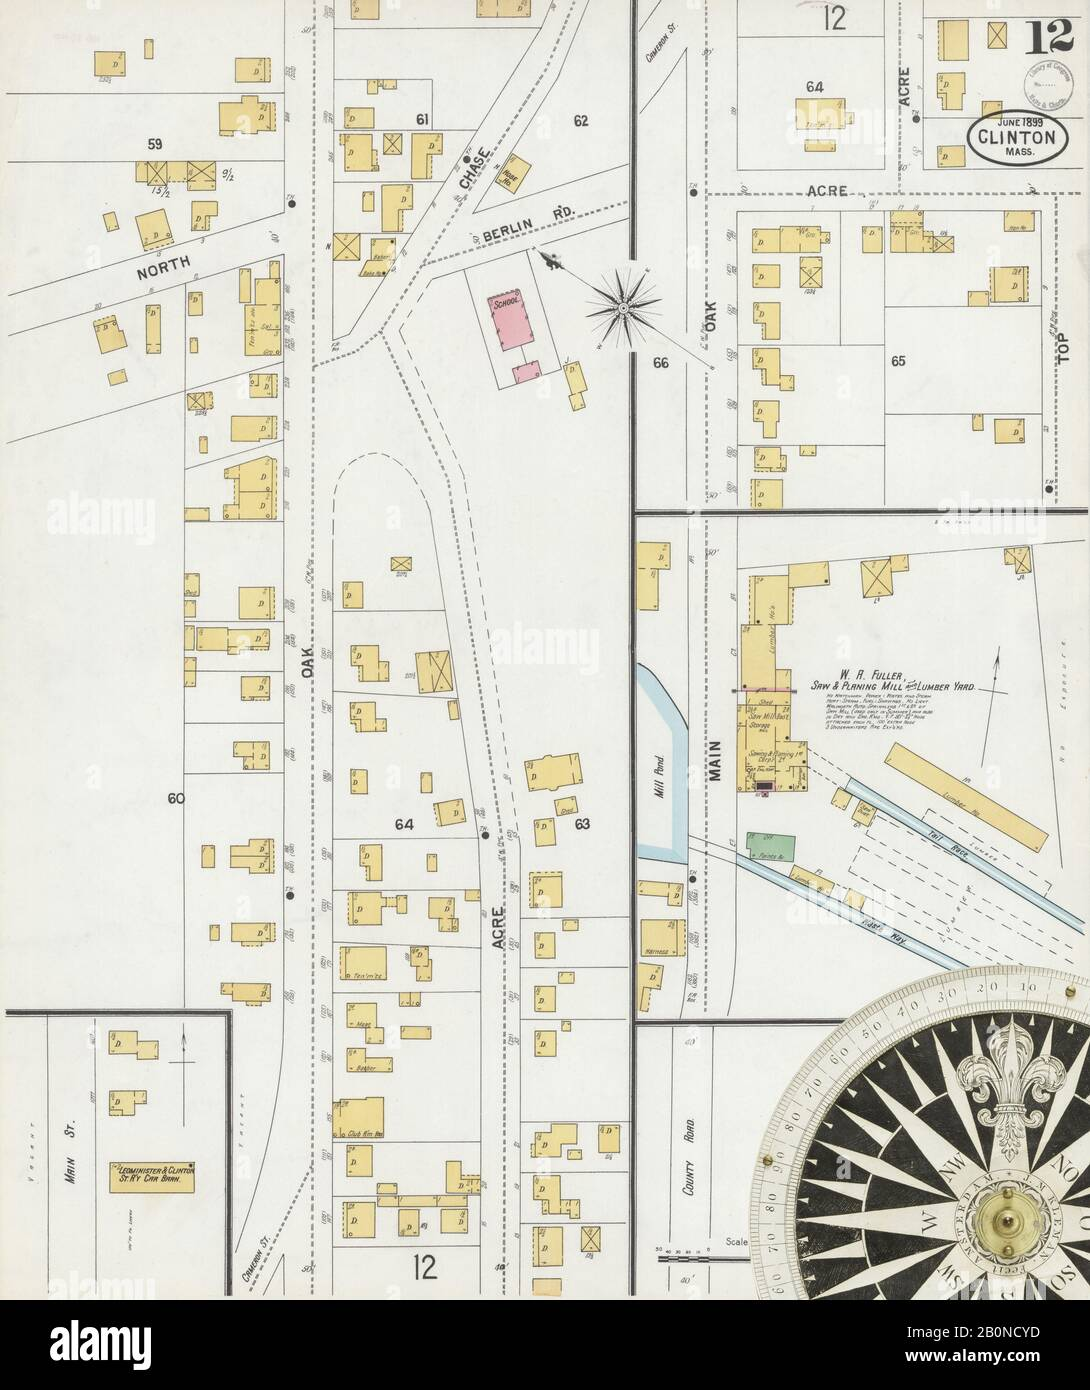 Image 12 of Sanborn Fire Insurance Map from Clinton, Worcester County, Massachusetts. Jun 1899. 12 Sheet(s), America, street map with a Nineteenth Century compass Stock Photo